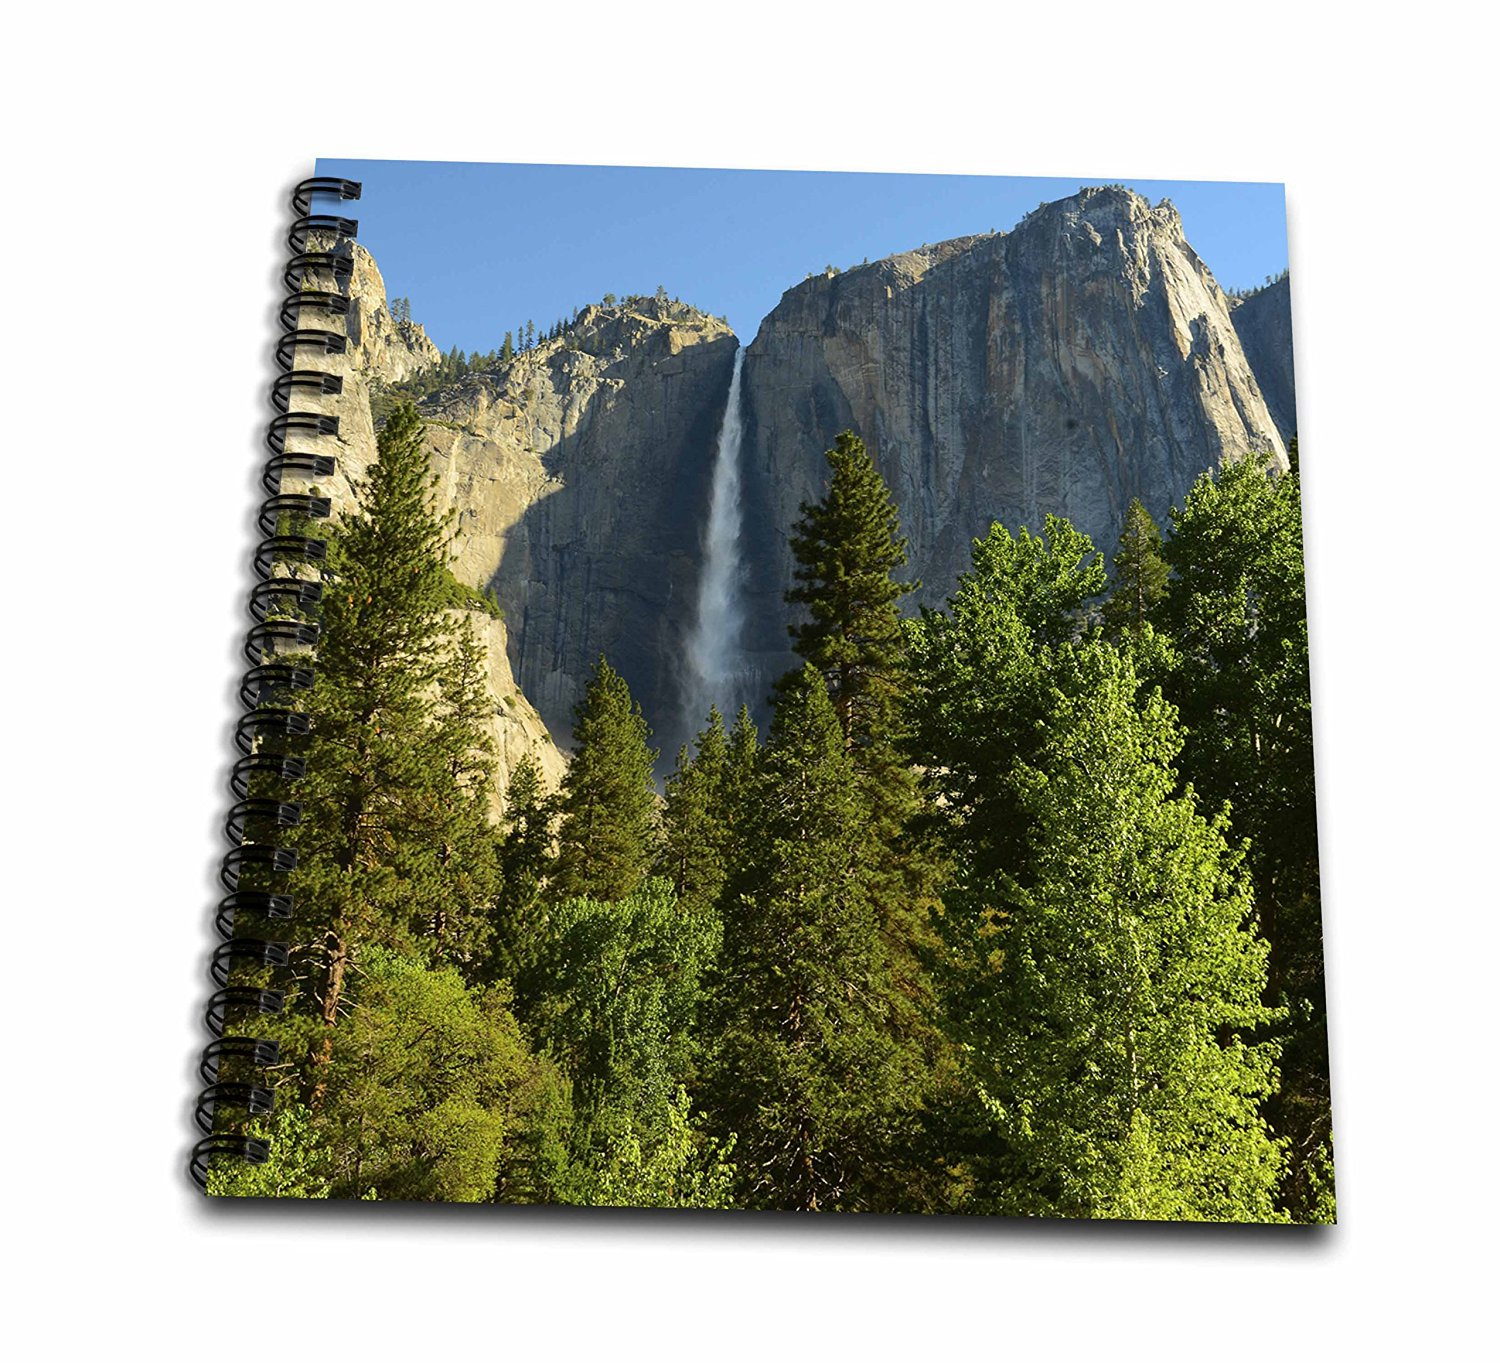 Danita Delimont - Michel Hersen - Waterfalls - Upper Yosemite Falls, Merced River, Yosemite NP, California, USA - Memory Book 12 x 12 inch (db_191679_2)